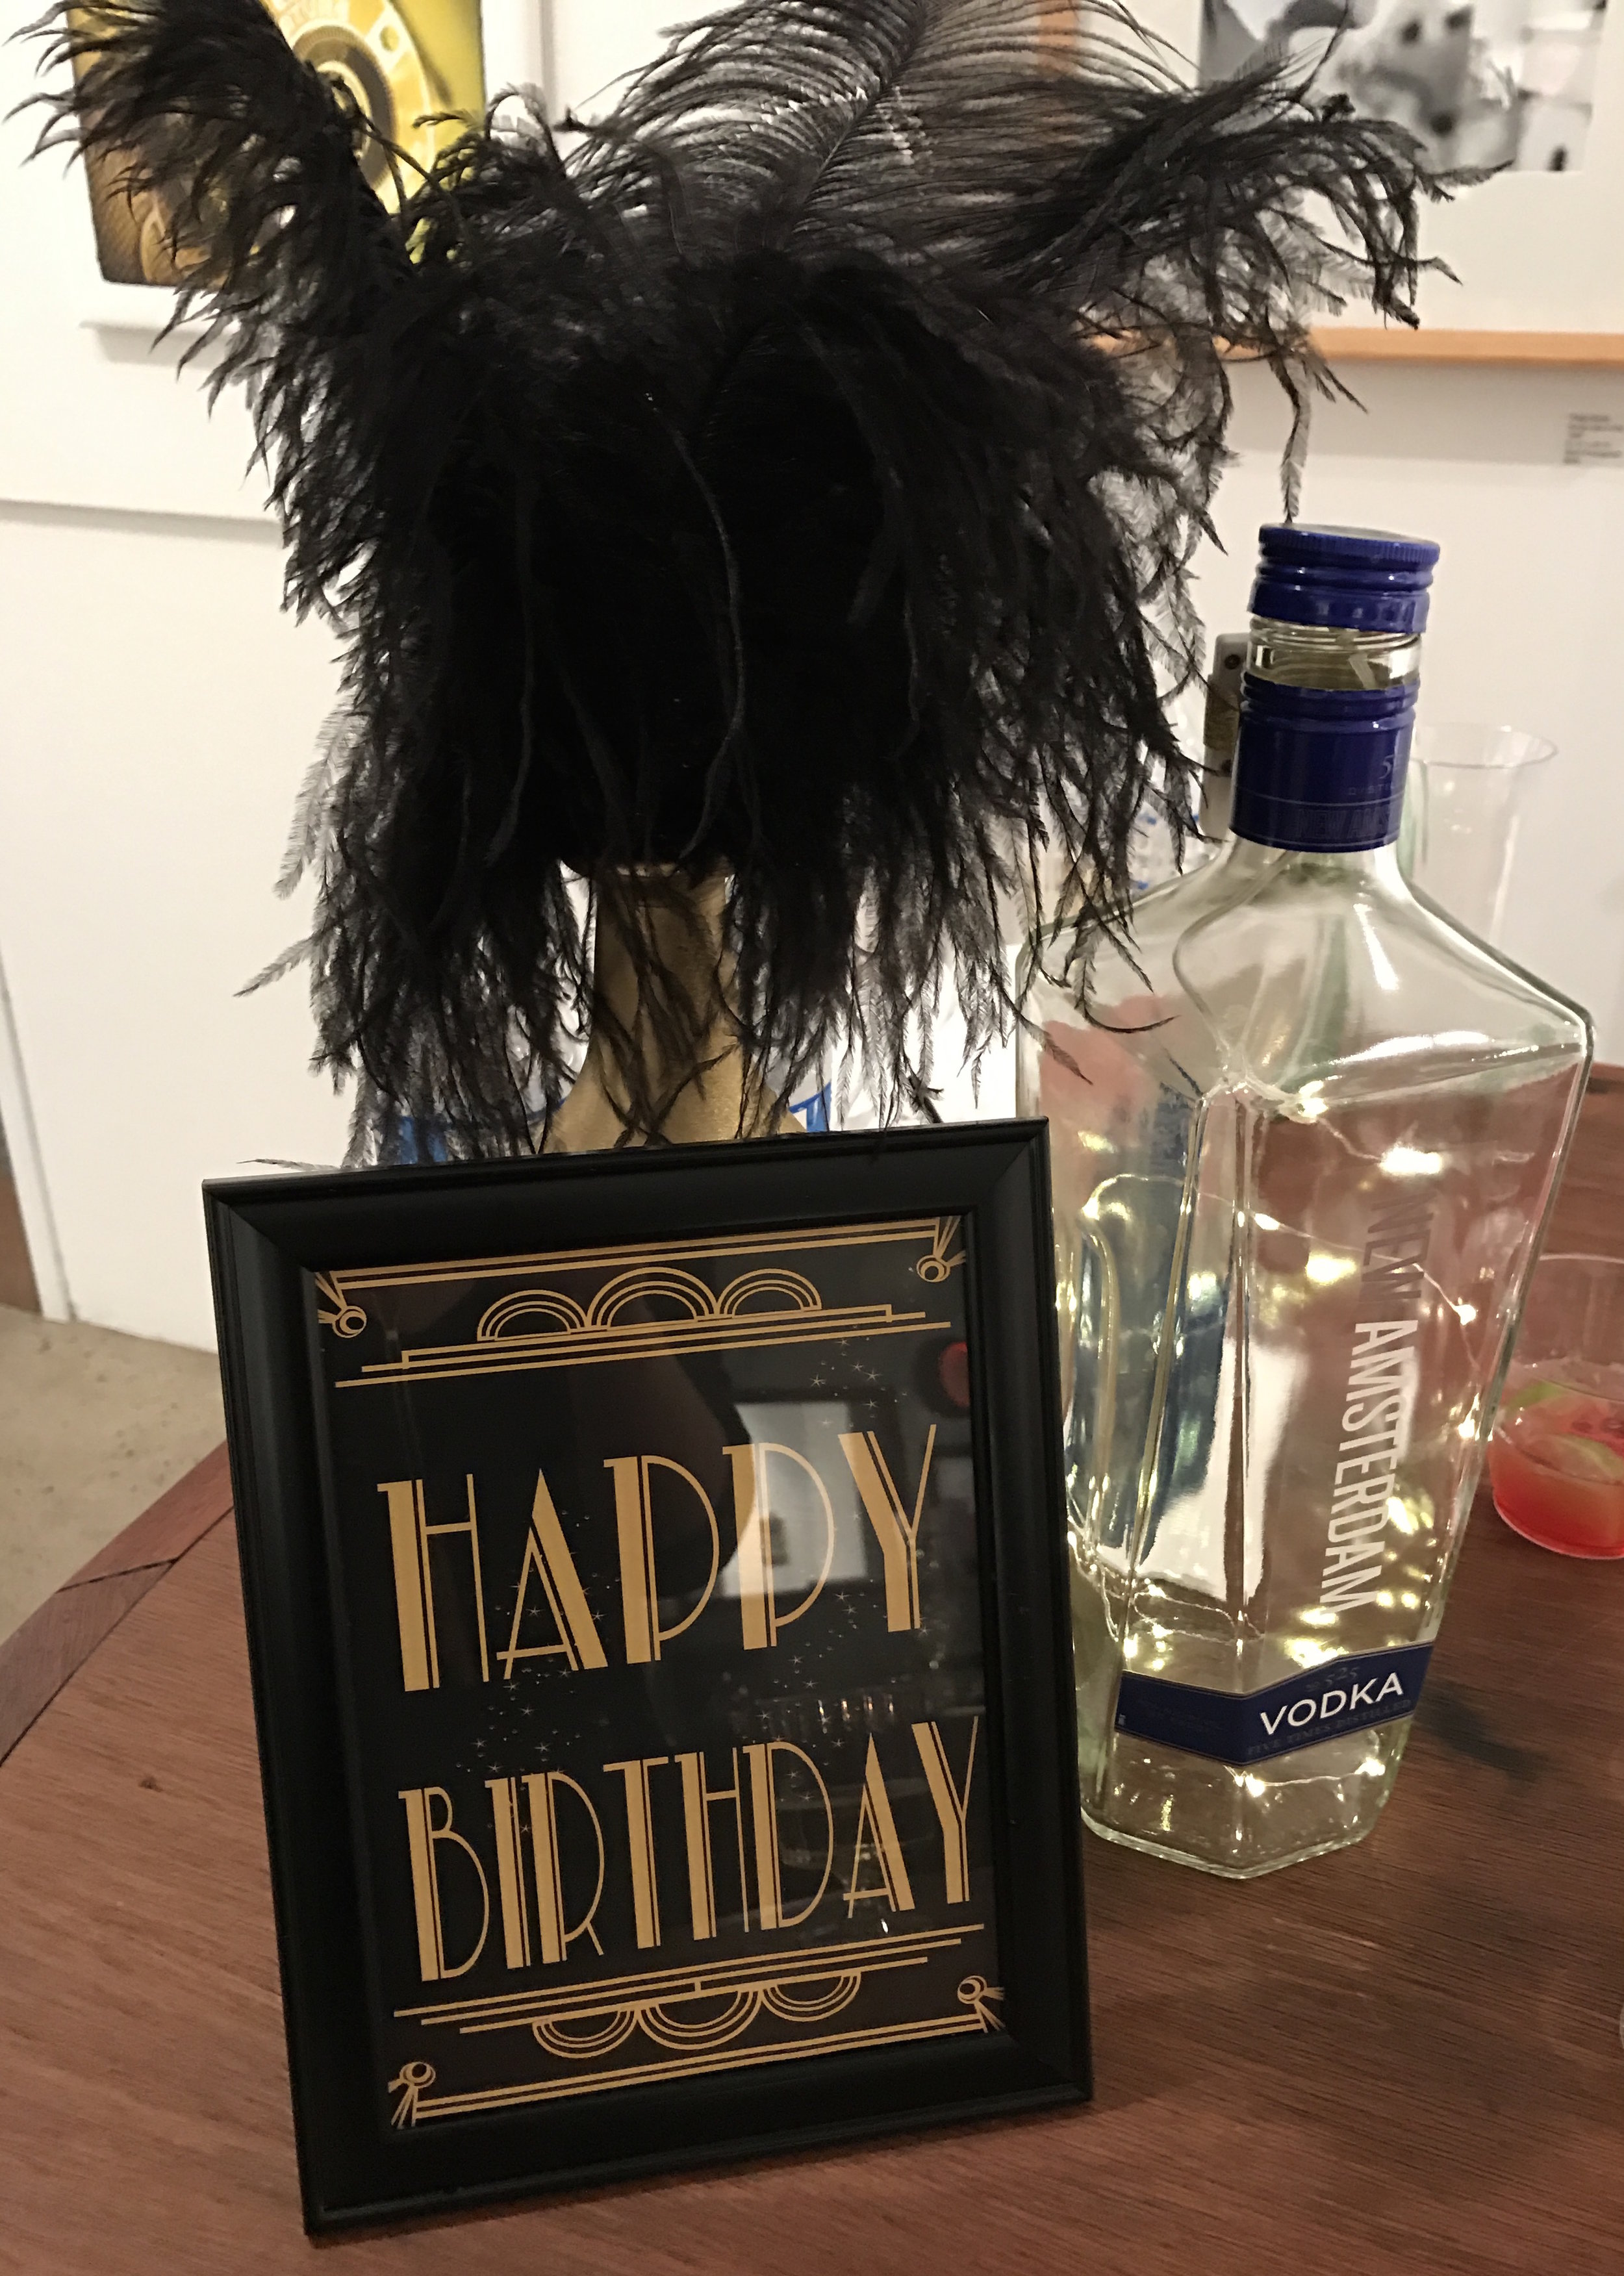 40th Birthday   Venue:  The Liberty Art Gallery & Event Space, Long Beach  Light up oversized liquor bottle with flexible lights!   Over The Moon Package: Full Design, Planning, & Coordination